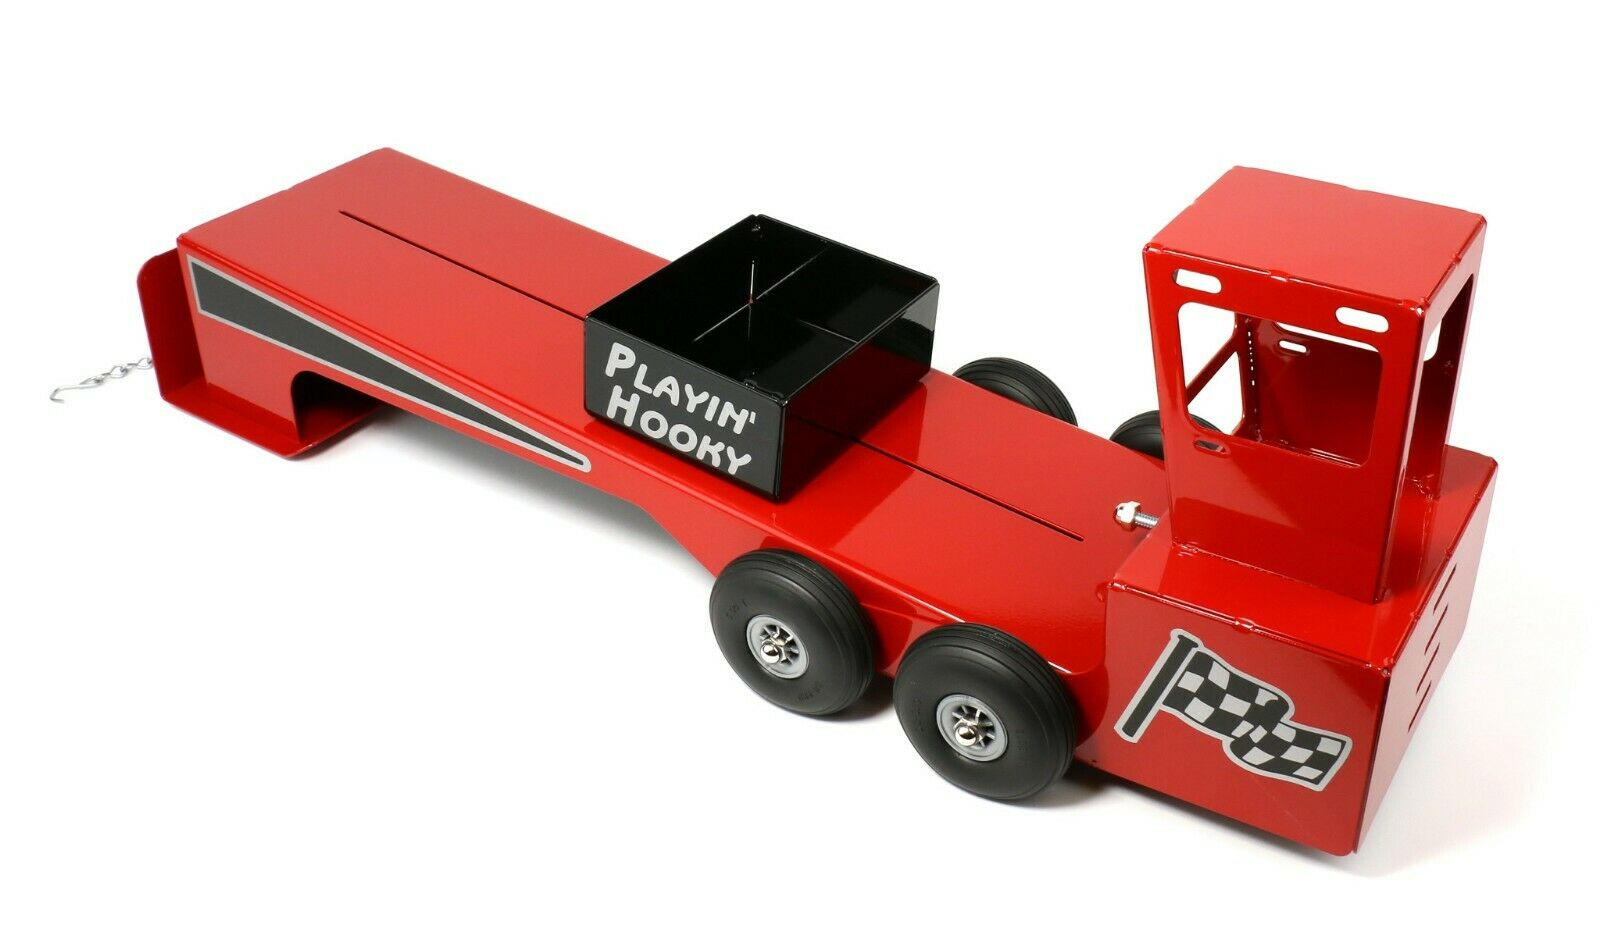 rot Toy Pulling Sled Skid, Tractor or Truck, 1 16 Scale, MADE IN USA, All Metal